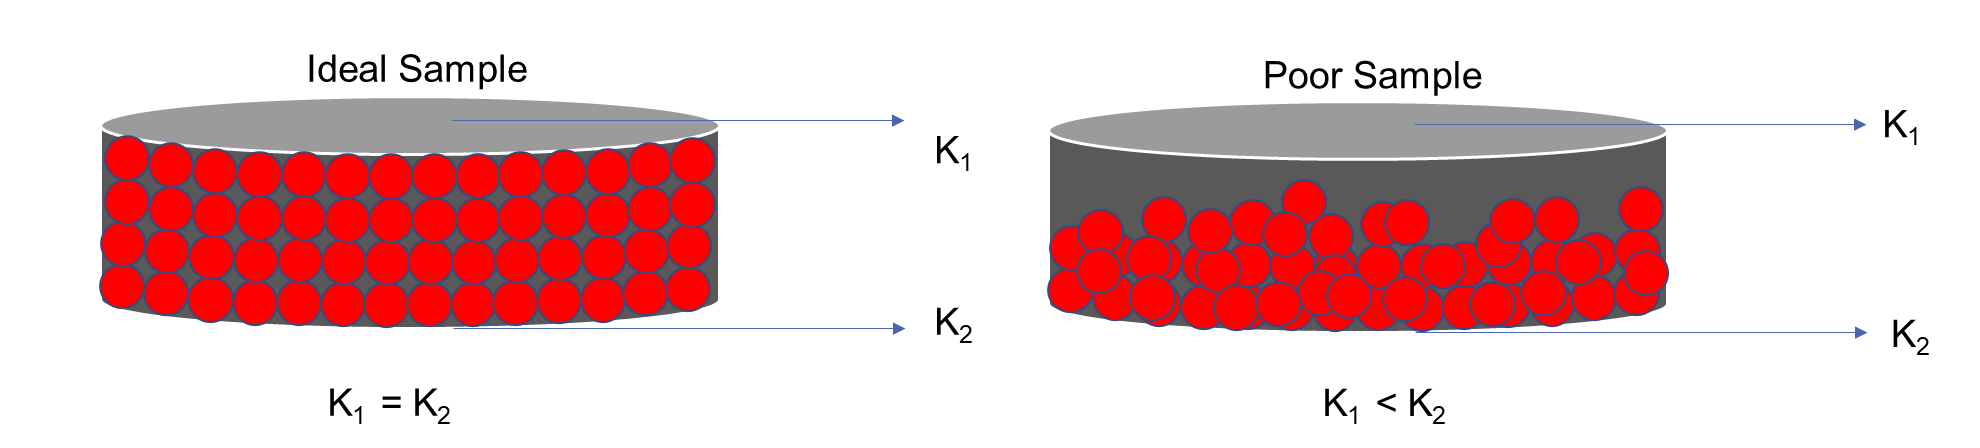 Particle Settling Through the Thickness of a Material